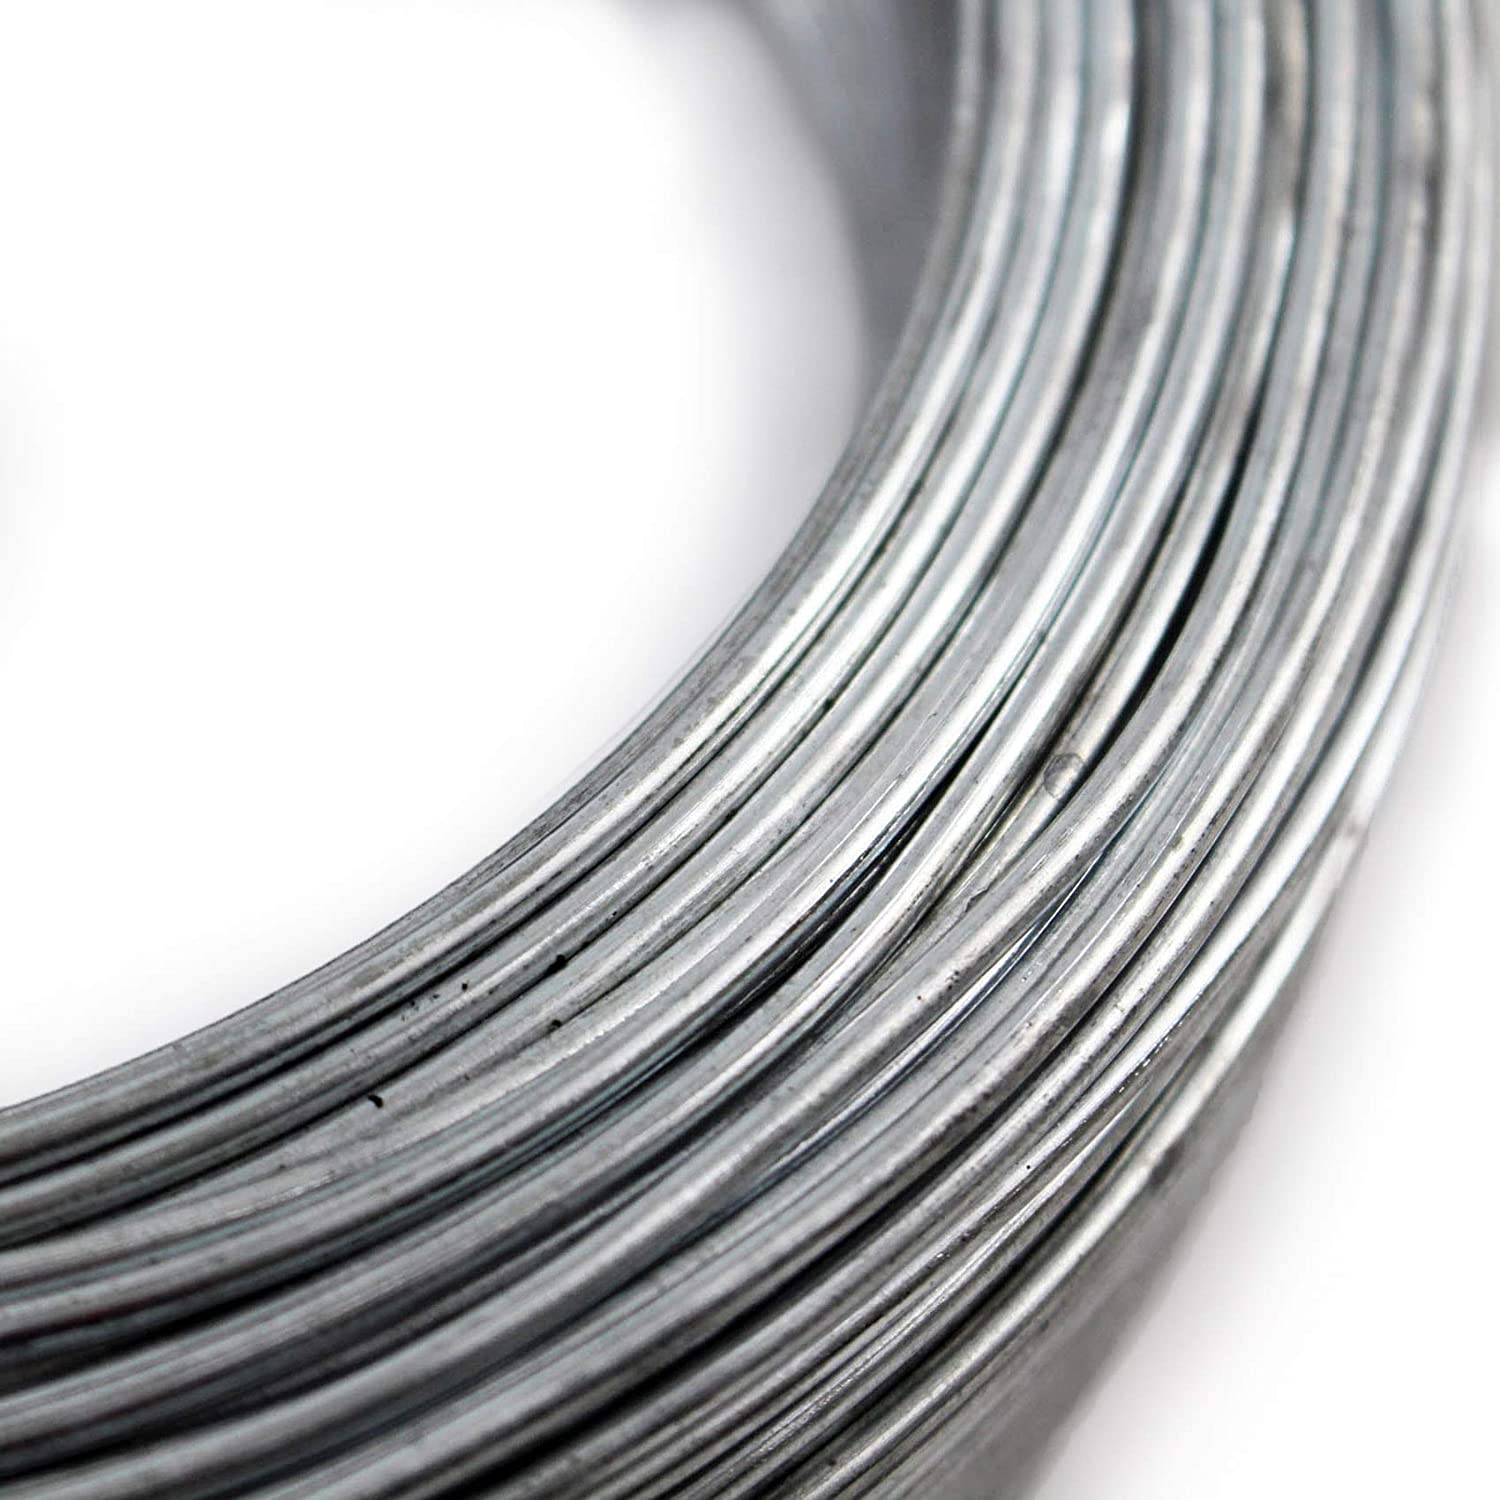 Easipet Tension Straining Wire for fencing, 100m x 2.5mm Wire (1 ...